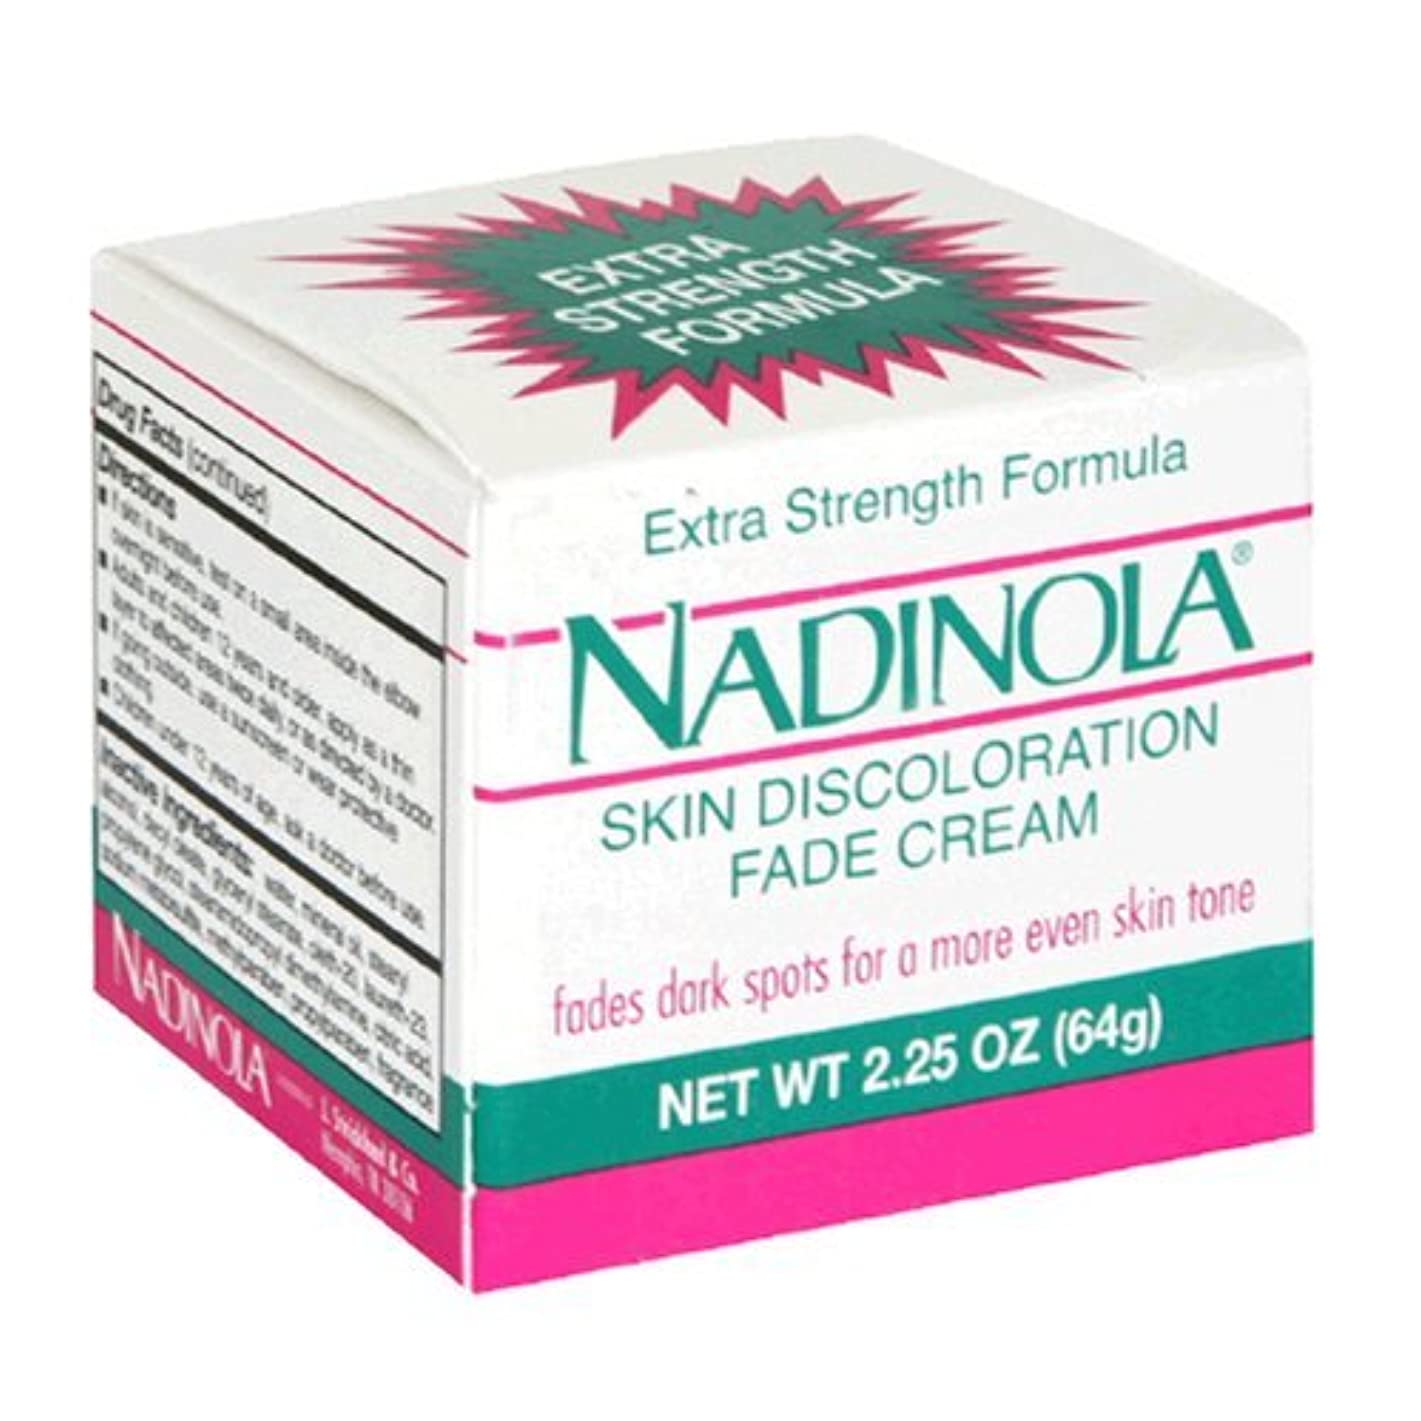 雑種間違いなく毛皮Nadinola Discoloration Fade Cream 2.25oz Extra Strength (並行輸入品)